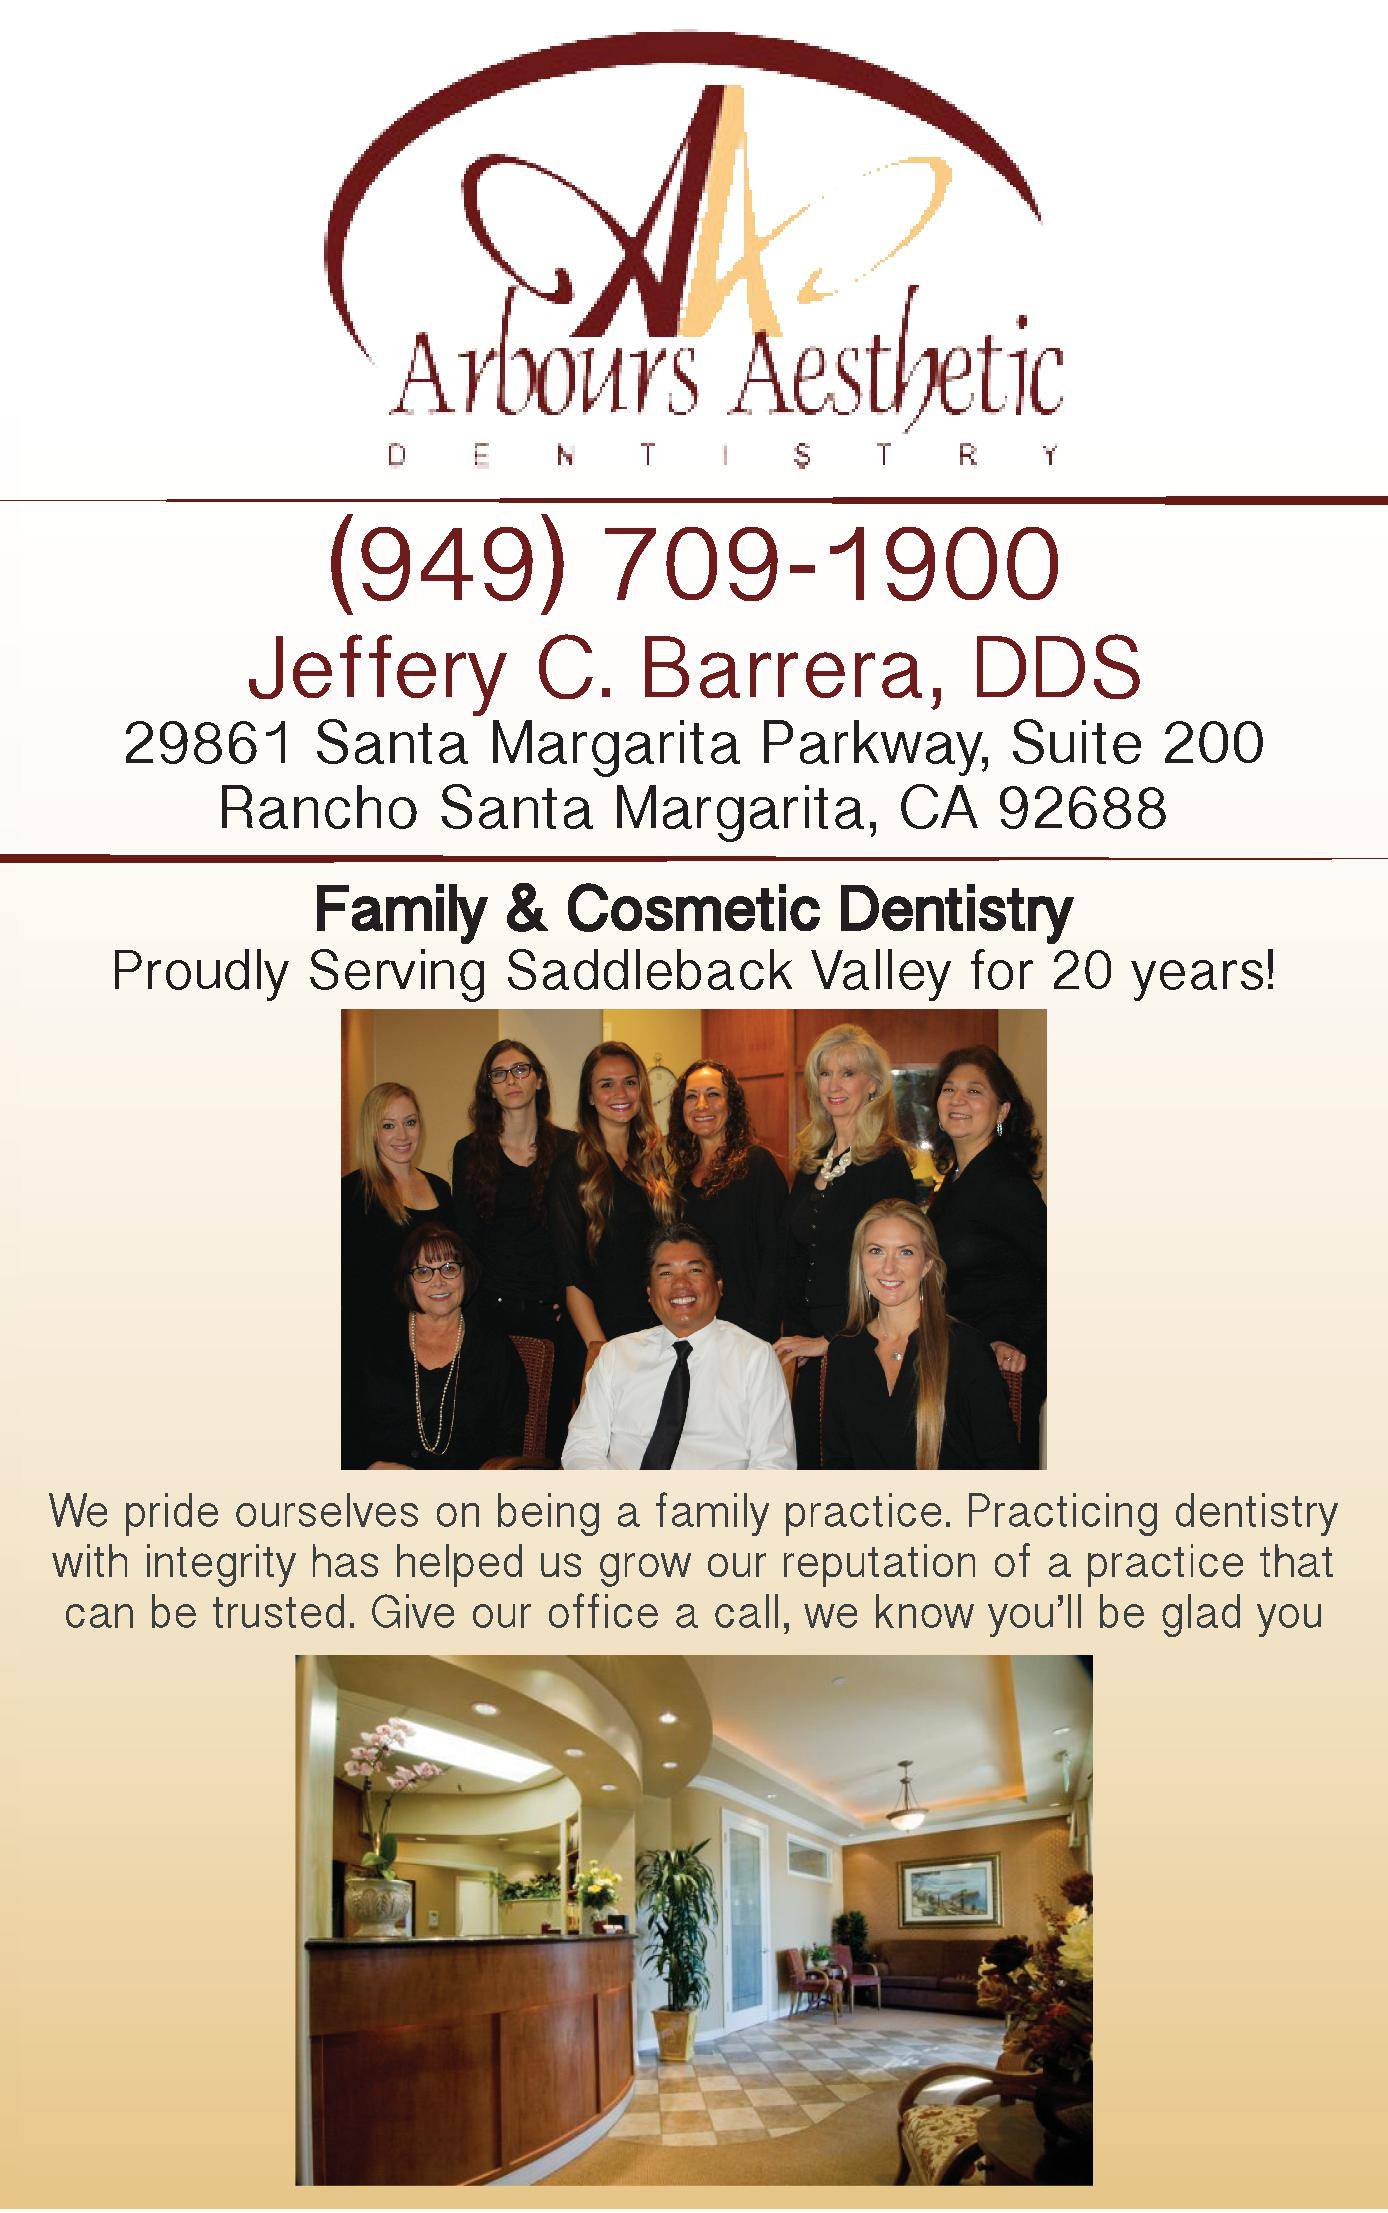 Arbours Aesthetic Dentistry